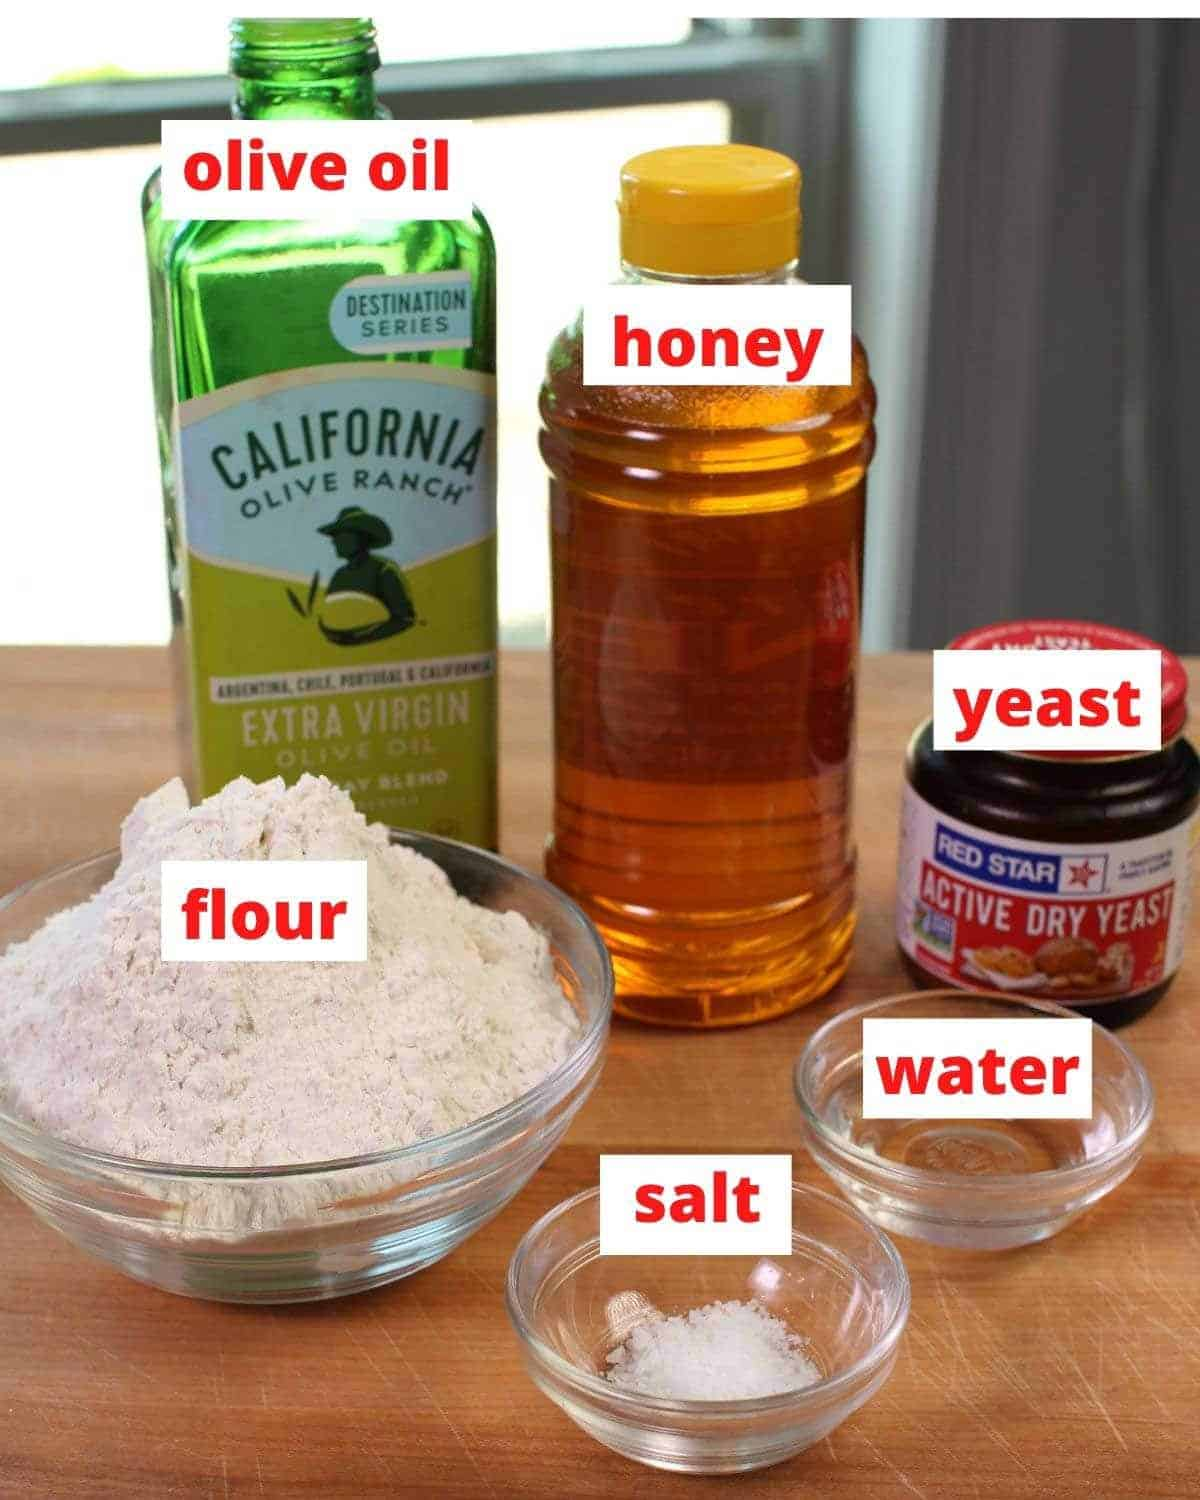 ingredients needed to make french bread including flour, yeast, and water on a wooden table.